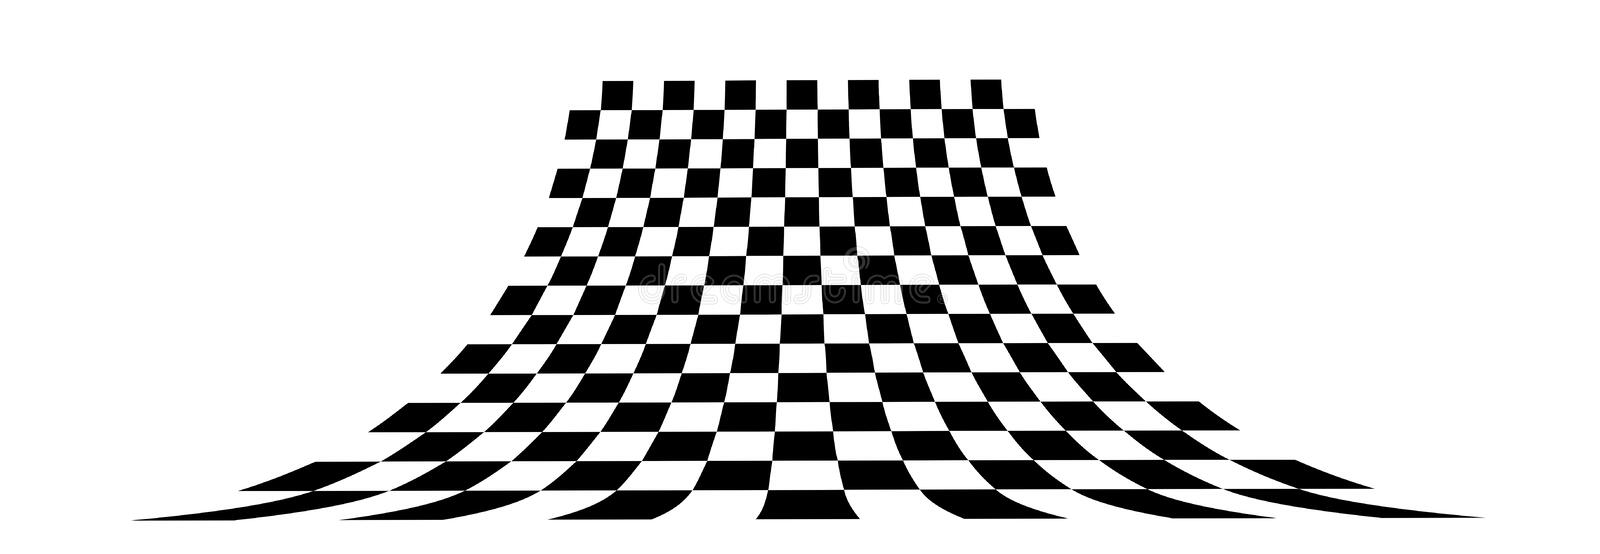 Download Perspective chessboard stock vector. Image of success - 2060955